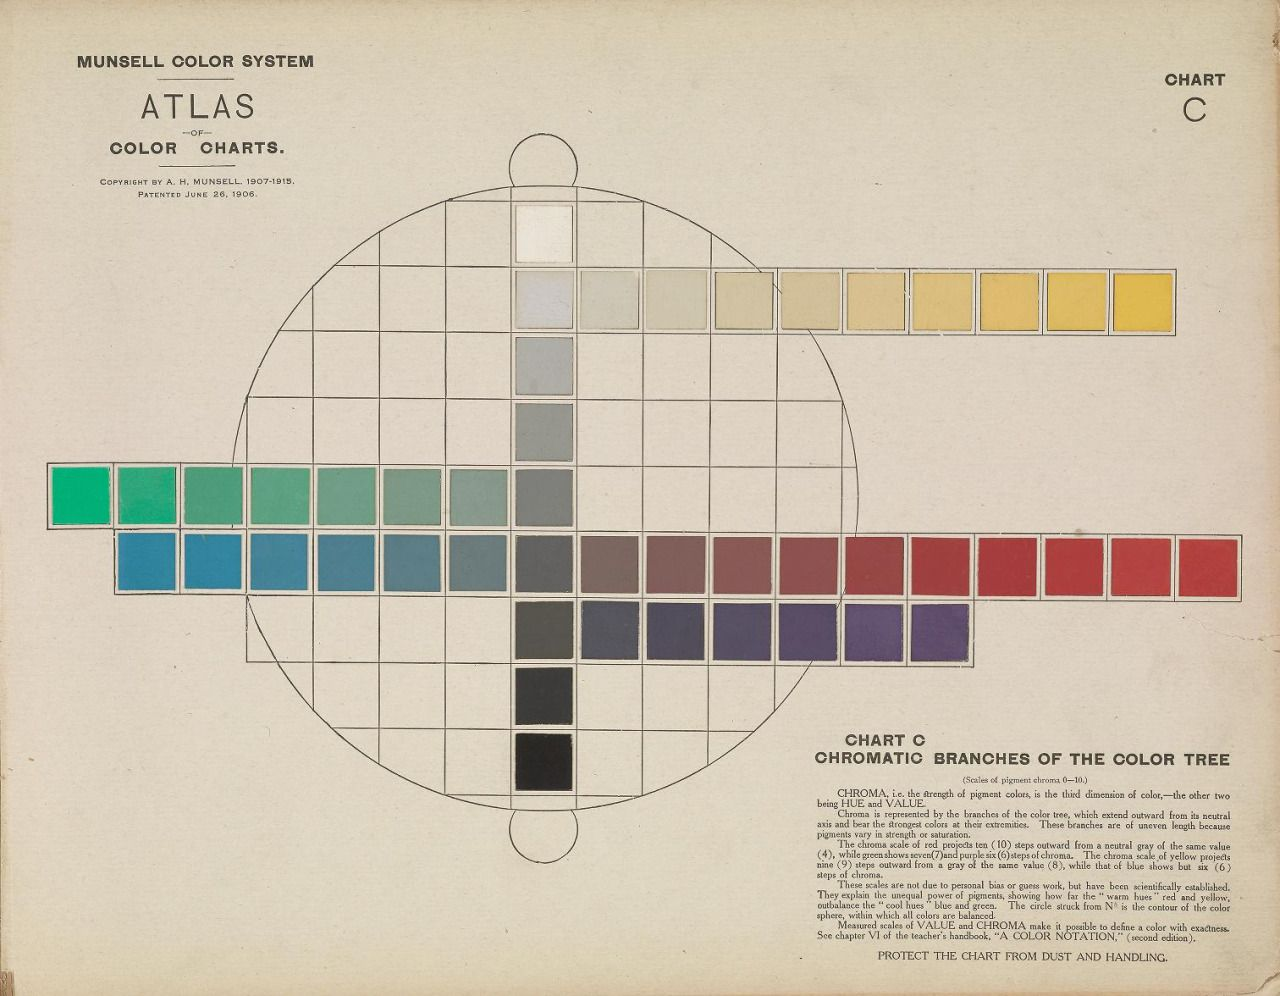 Heaveninawildflower smithsonianlibraries the munsell color smithsonianlibraries the munsell color system was developed by art professor albert munsell as a way to chart color based on hue value and chroma nvjuhfo Gallery